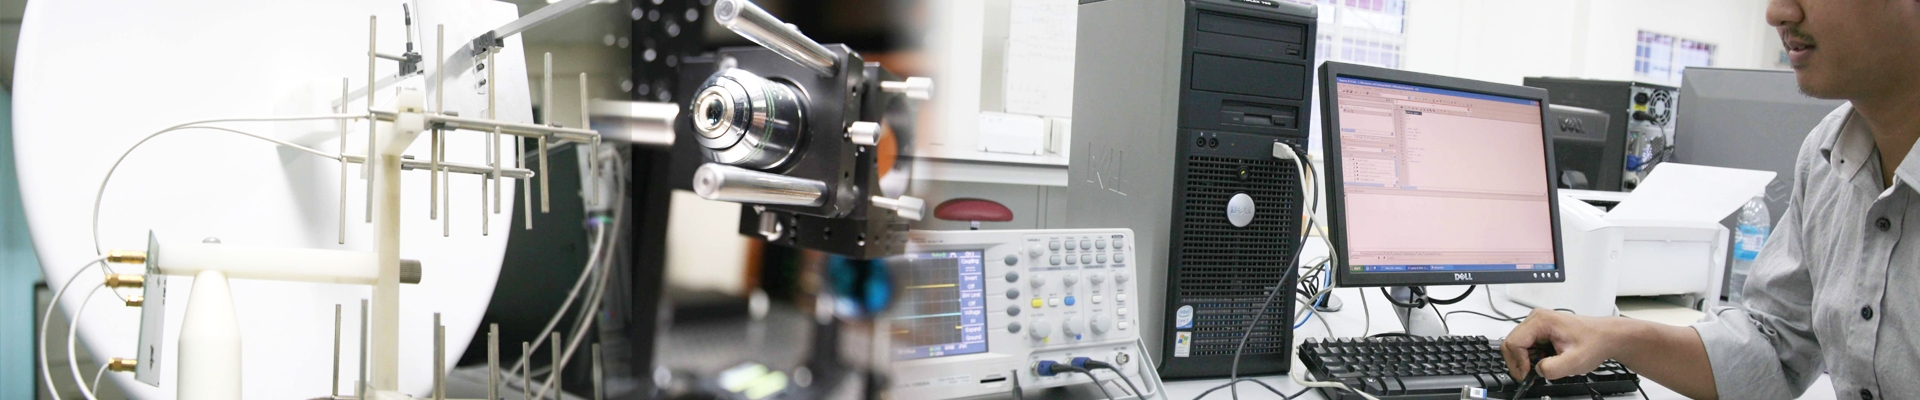 Tech Gadgets For Video Manufacturing